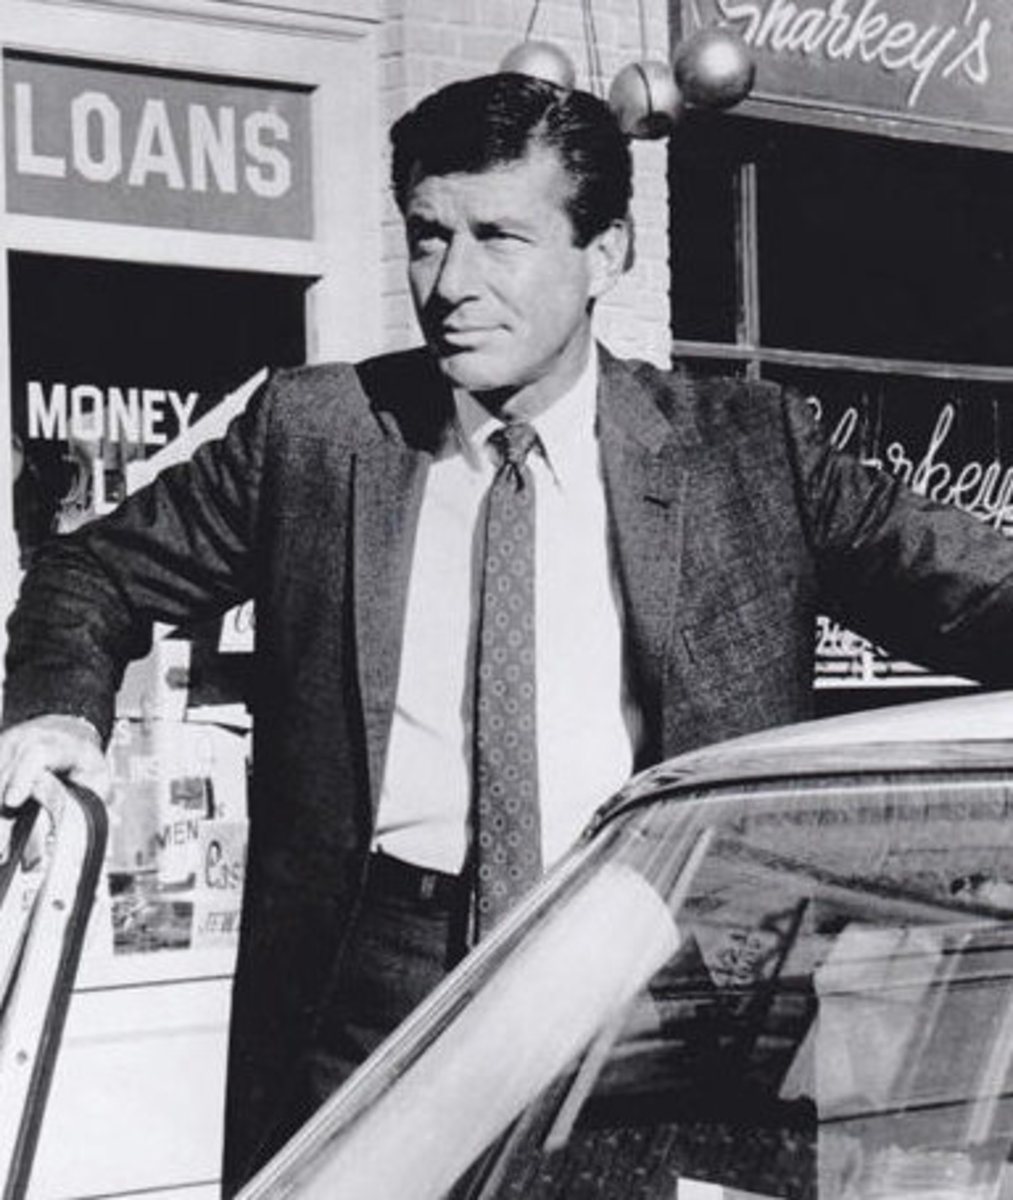 """77 Sunset Strip"" Private eye Stuart Bailey who ran a Los Angeles detective agency. The show, one of the first TV series hits from the Warner Brothers studio, ran on ABC from 1958-64"